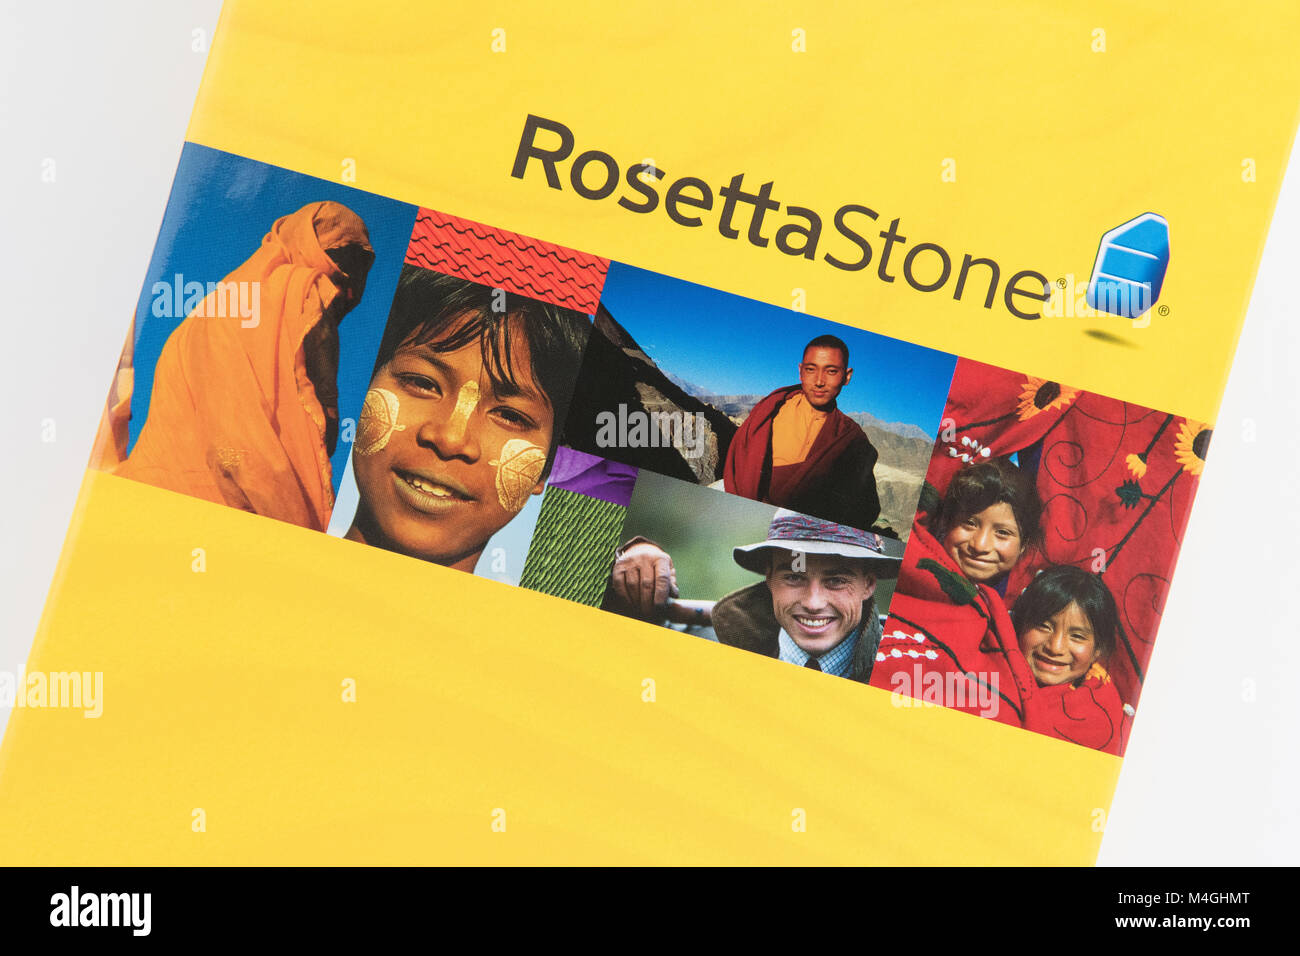 Rosetta Stone language learning course software - Stock Image